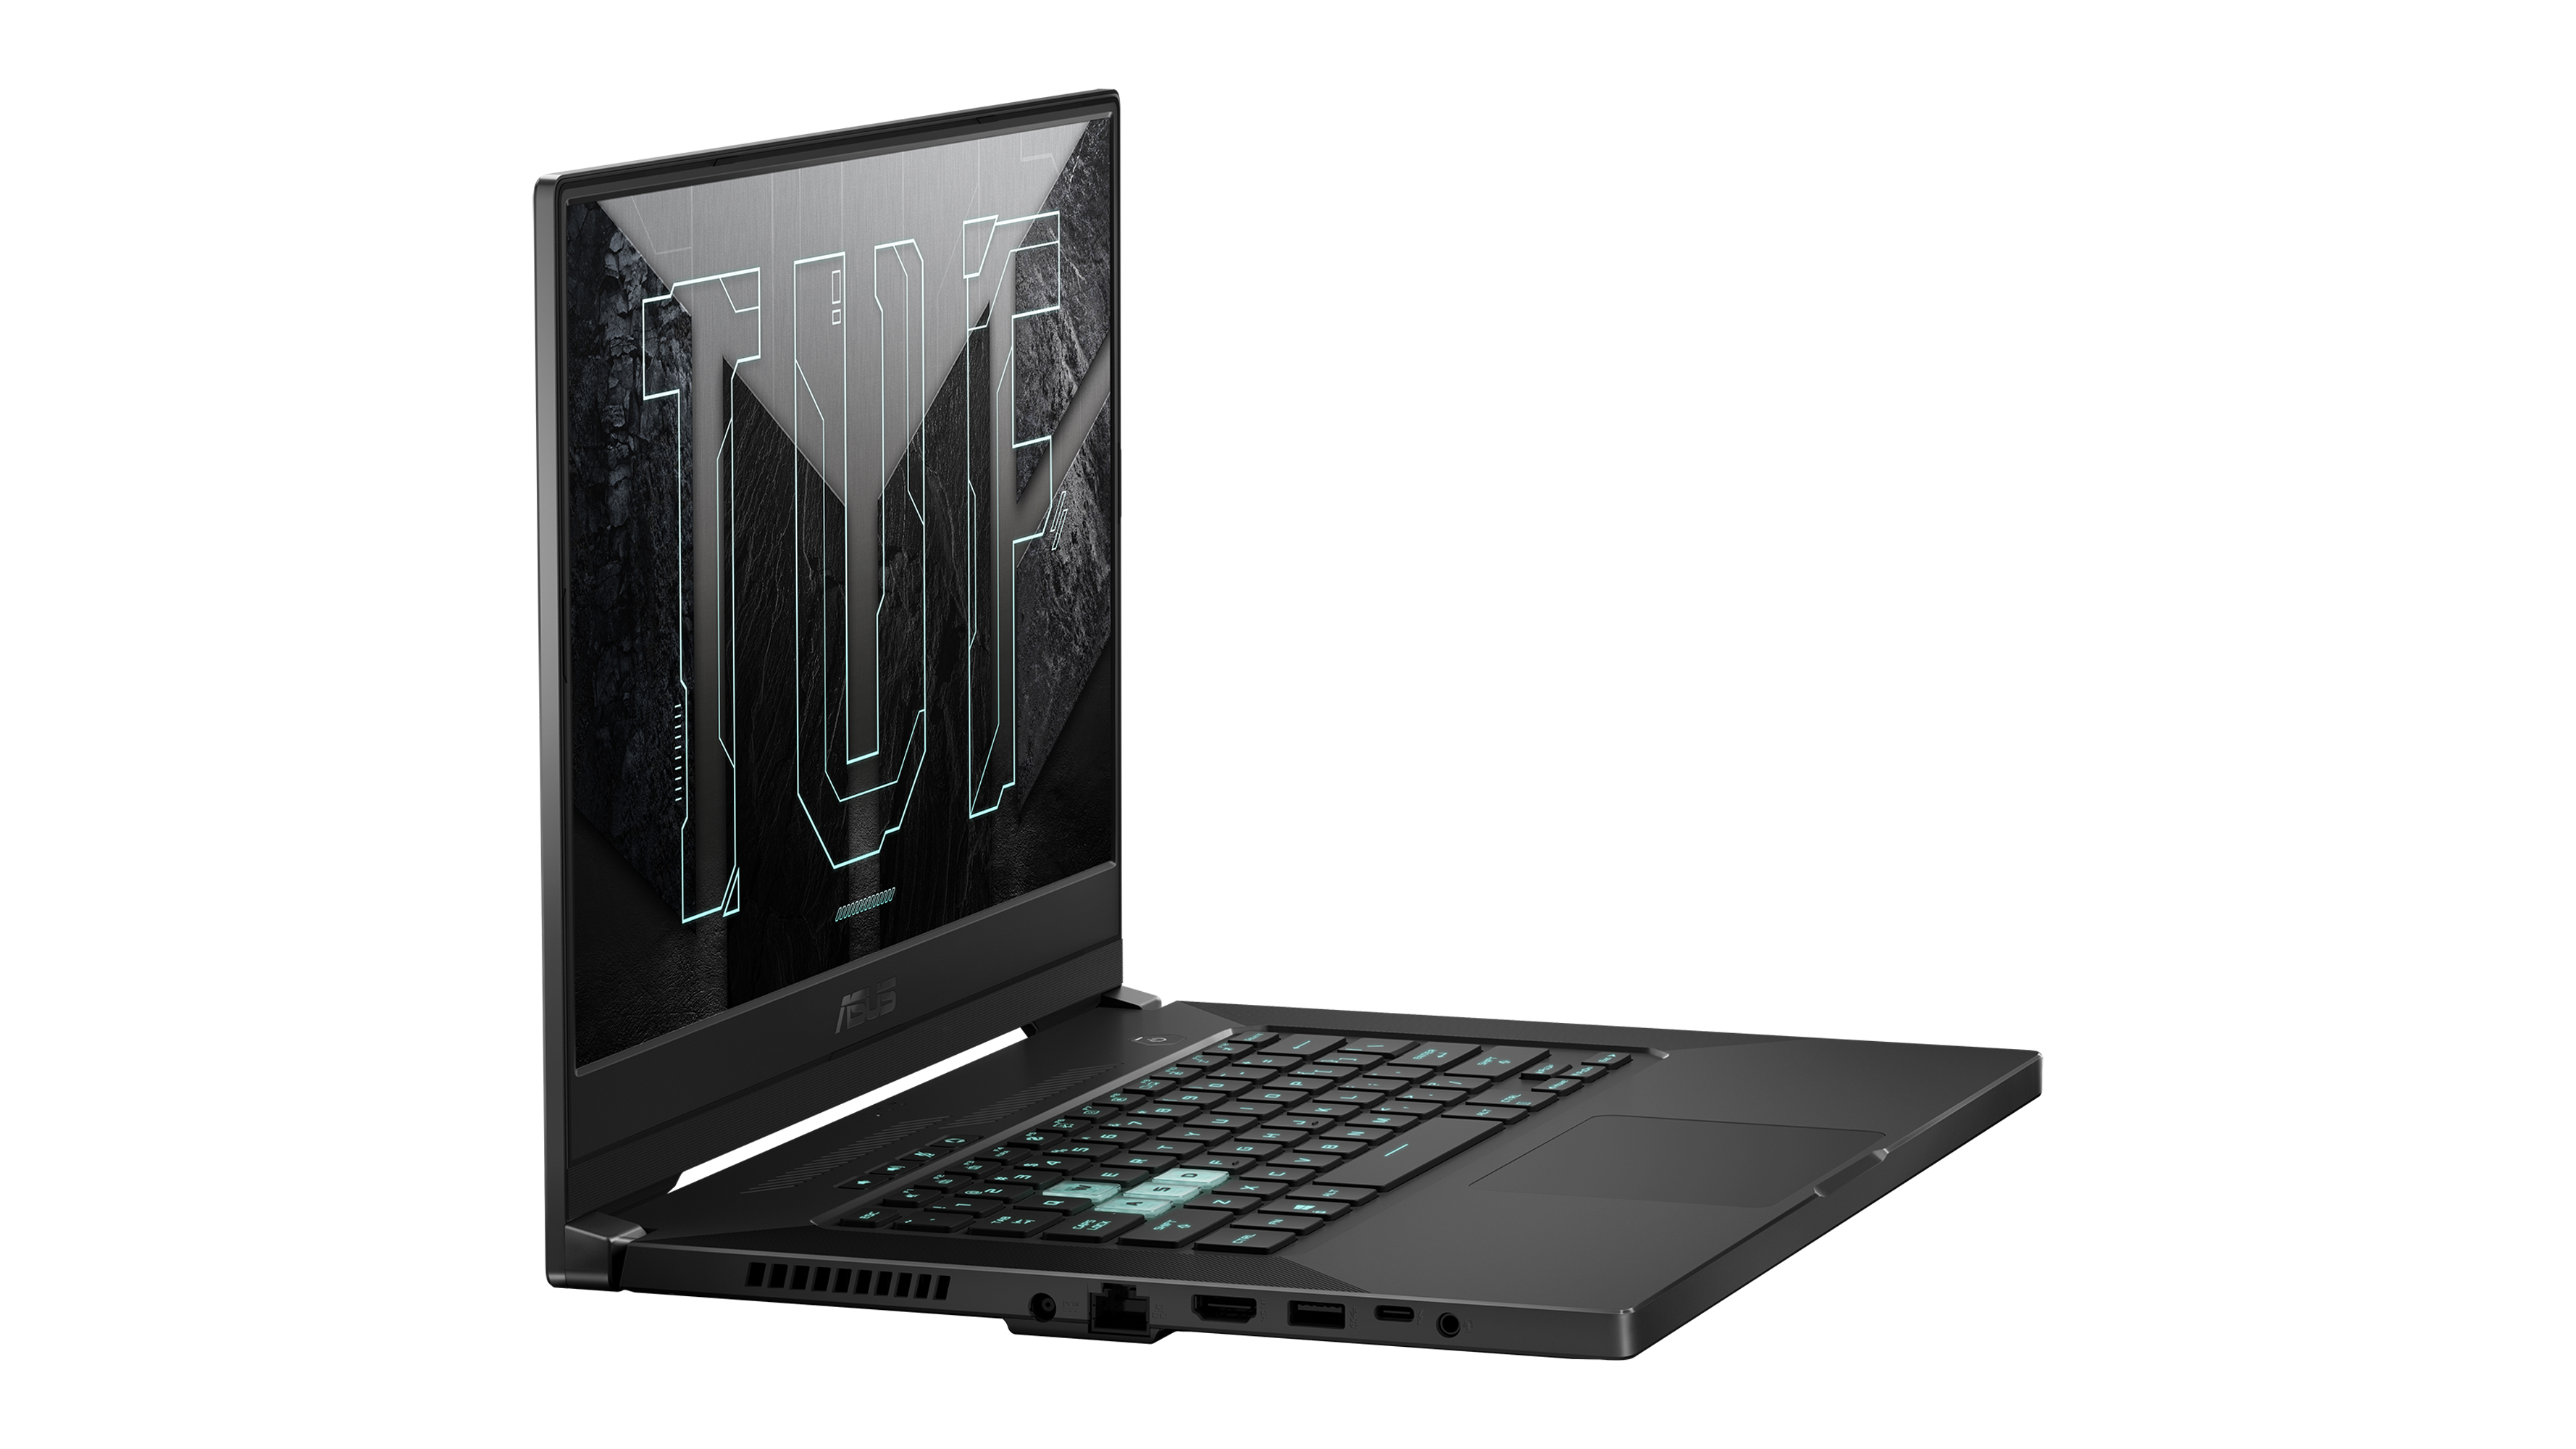 The Asus TUF Dash F15 from the side, where you can see the gaming laptop's left-side ports. There's an Asus TUF logo on the display.